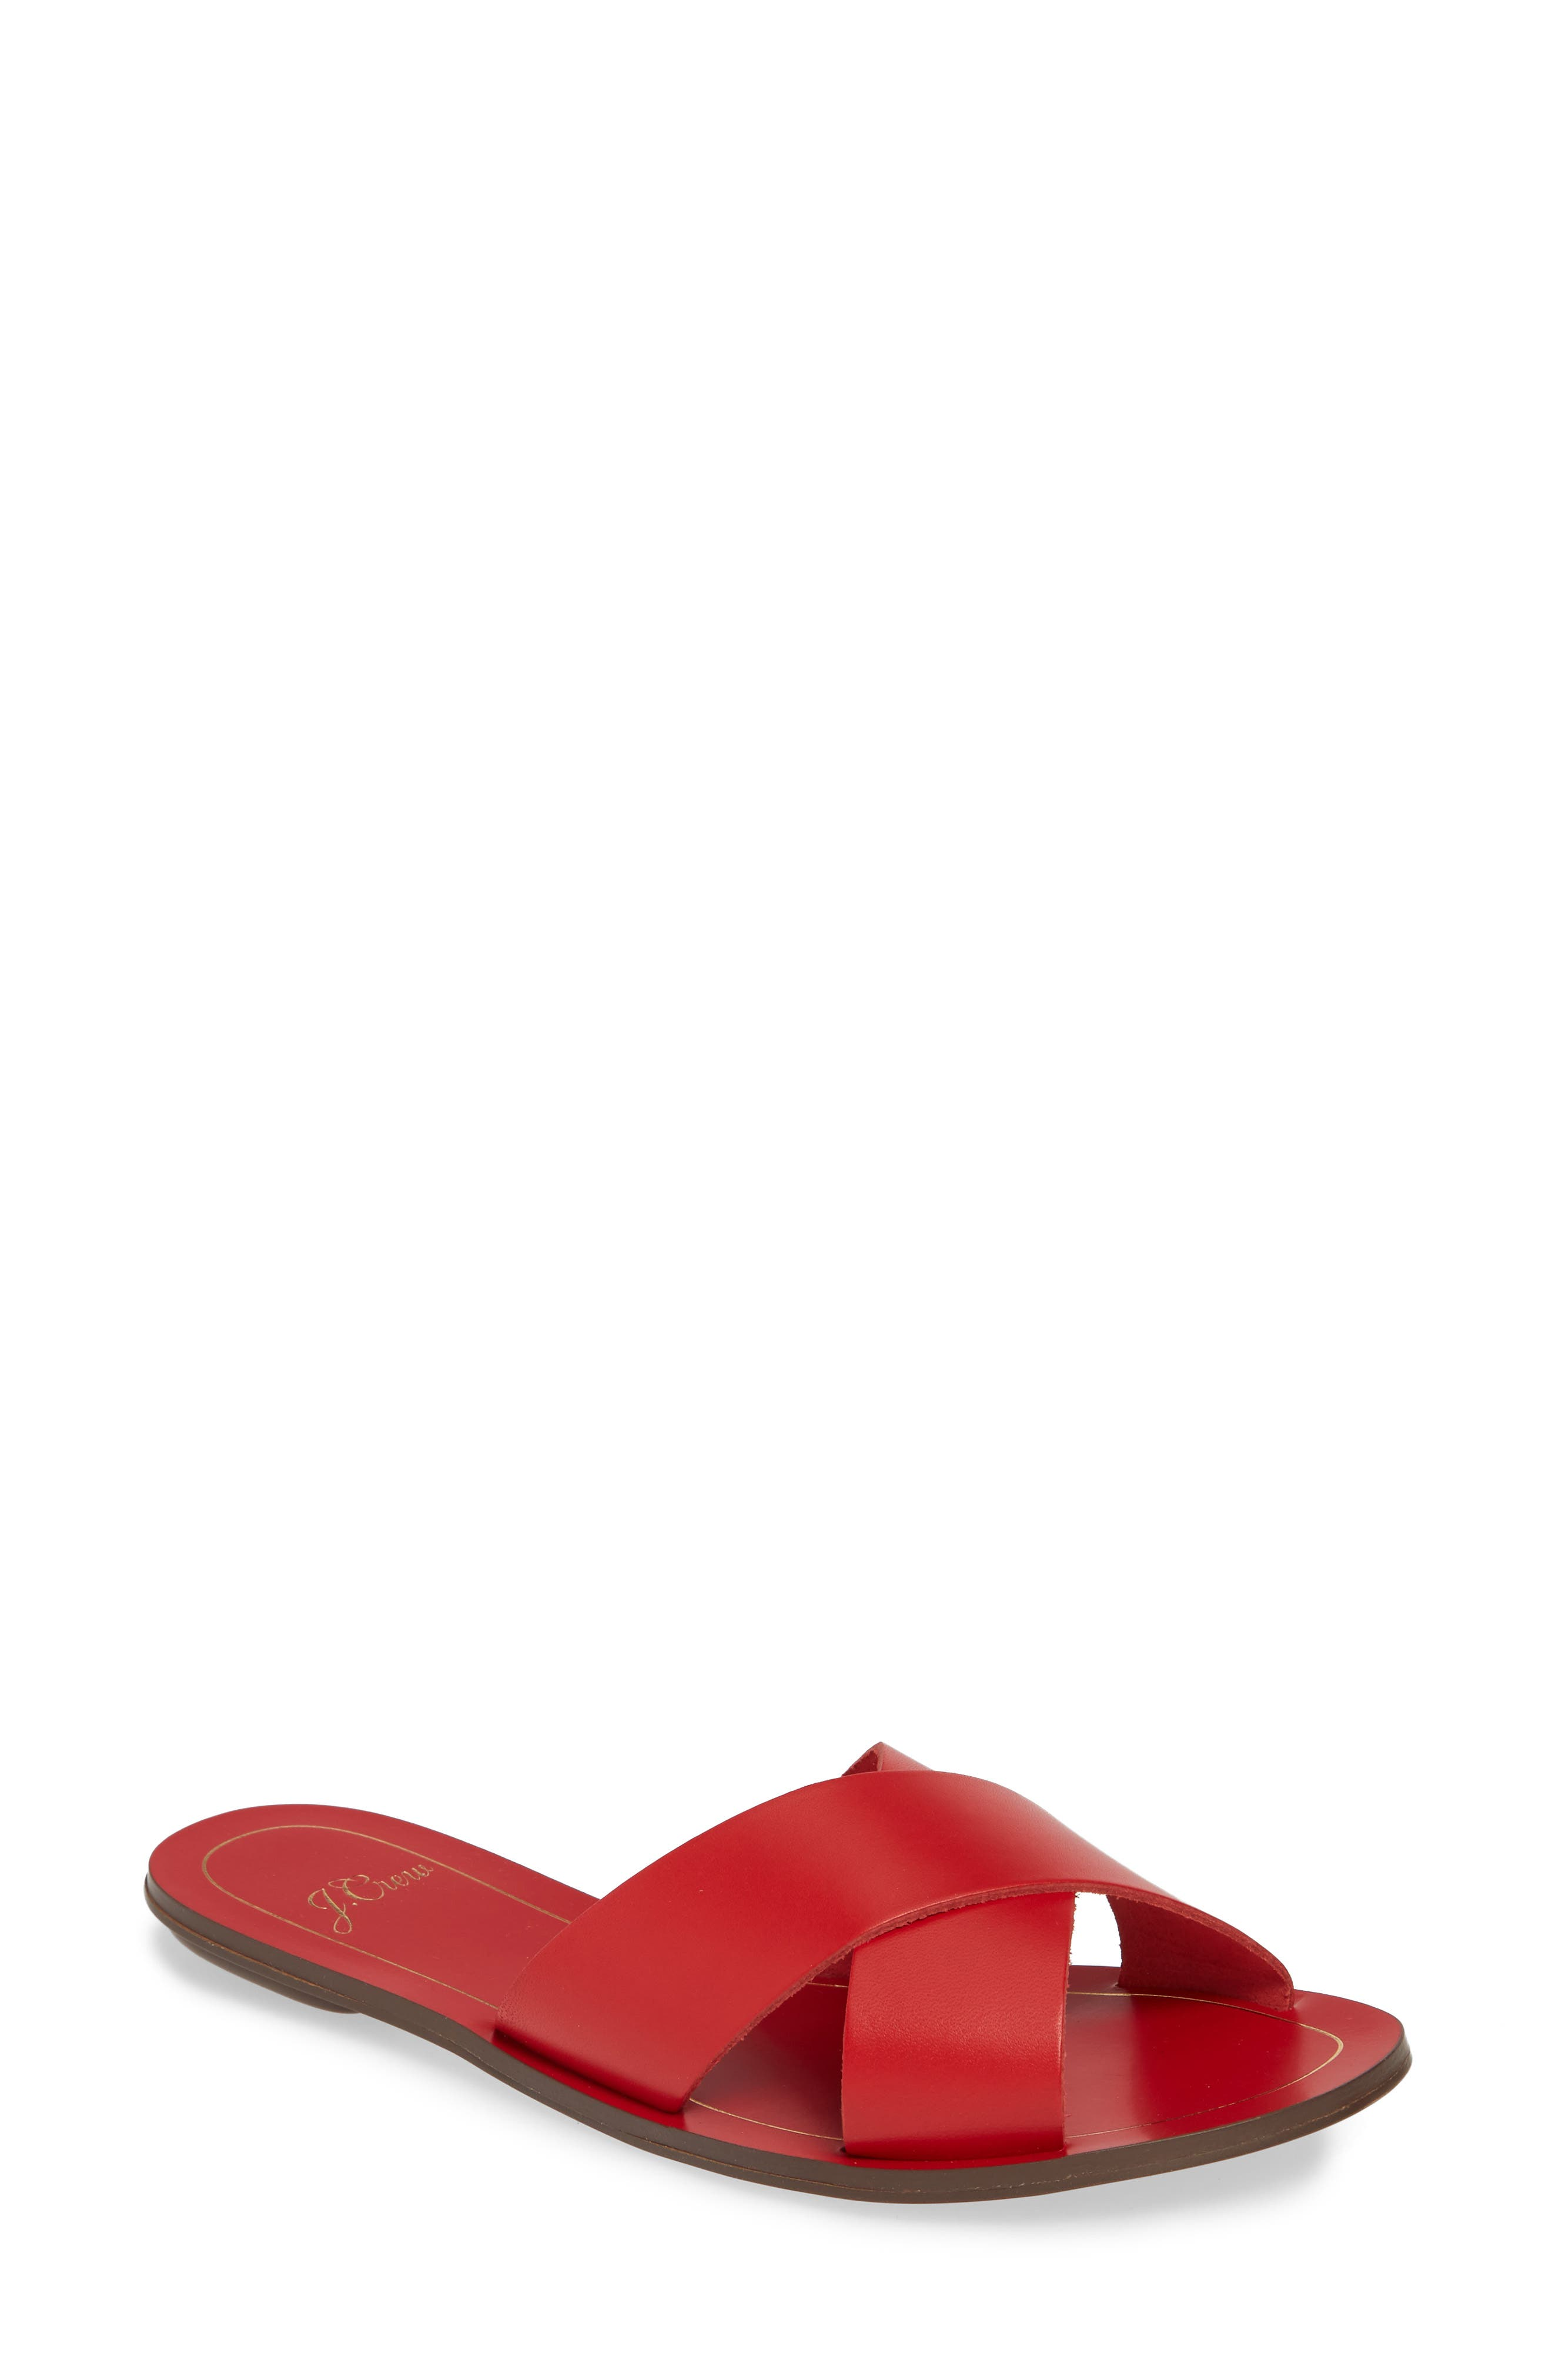 J.CREW, Cyprus Slide Sandal, Main thumbnail 1, color, BOLD RED LEATHER